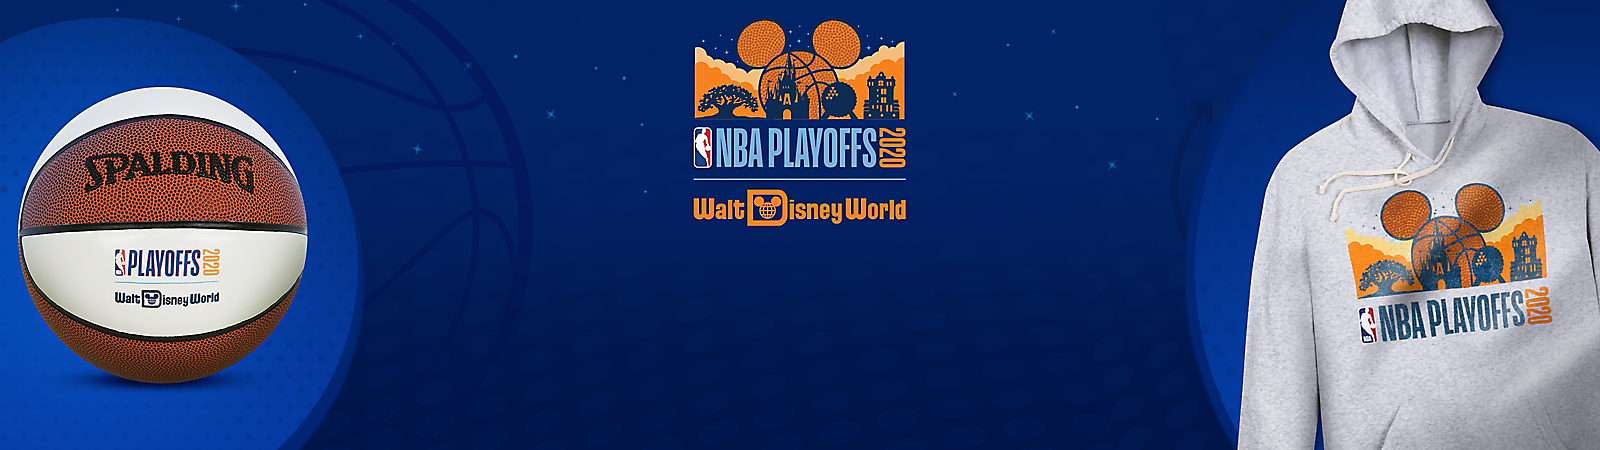 NBA Playoffs 2020 Walt Disney World Resort [logo]  NBA Playoffs Spalding basketball NBA Playoffs hoodie